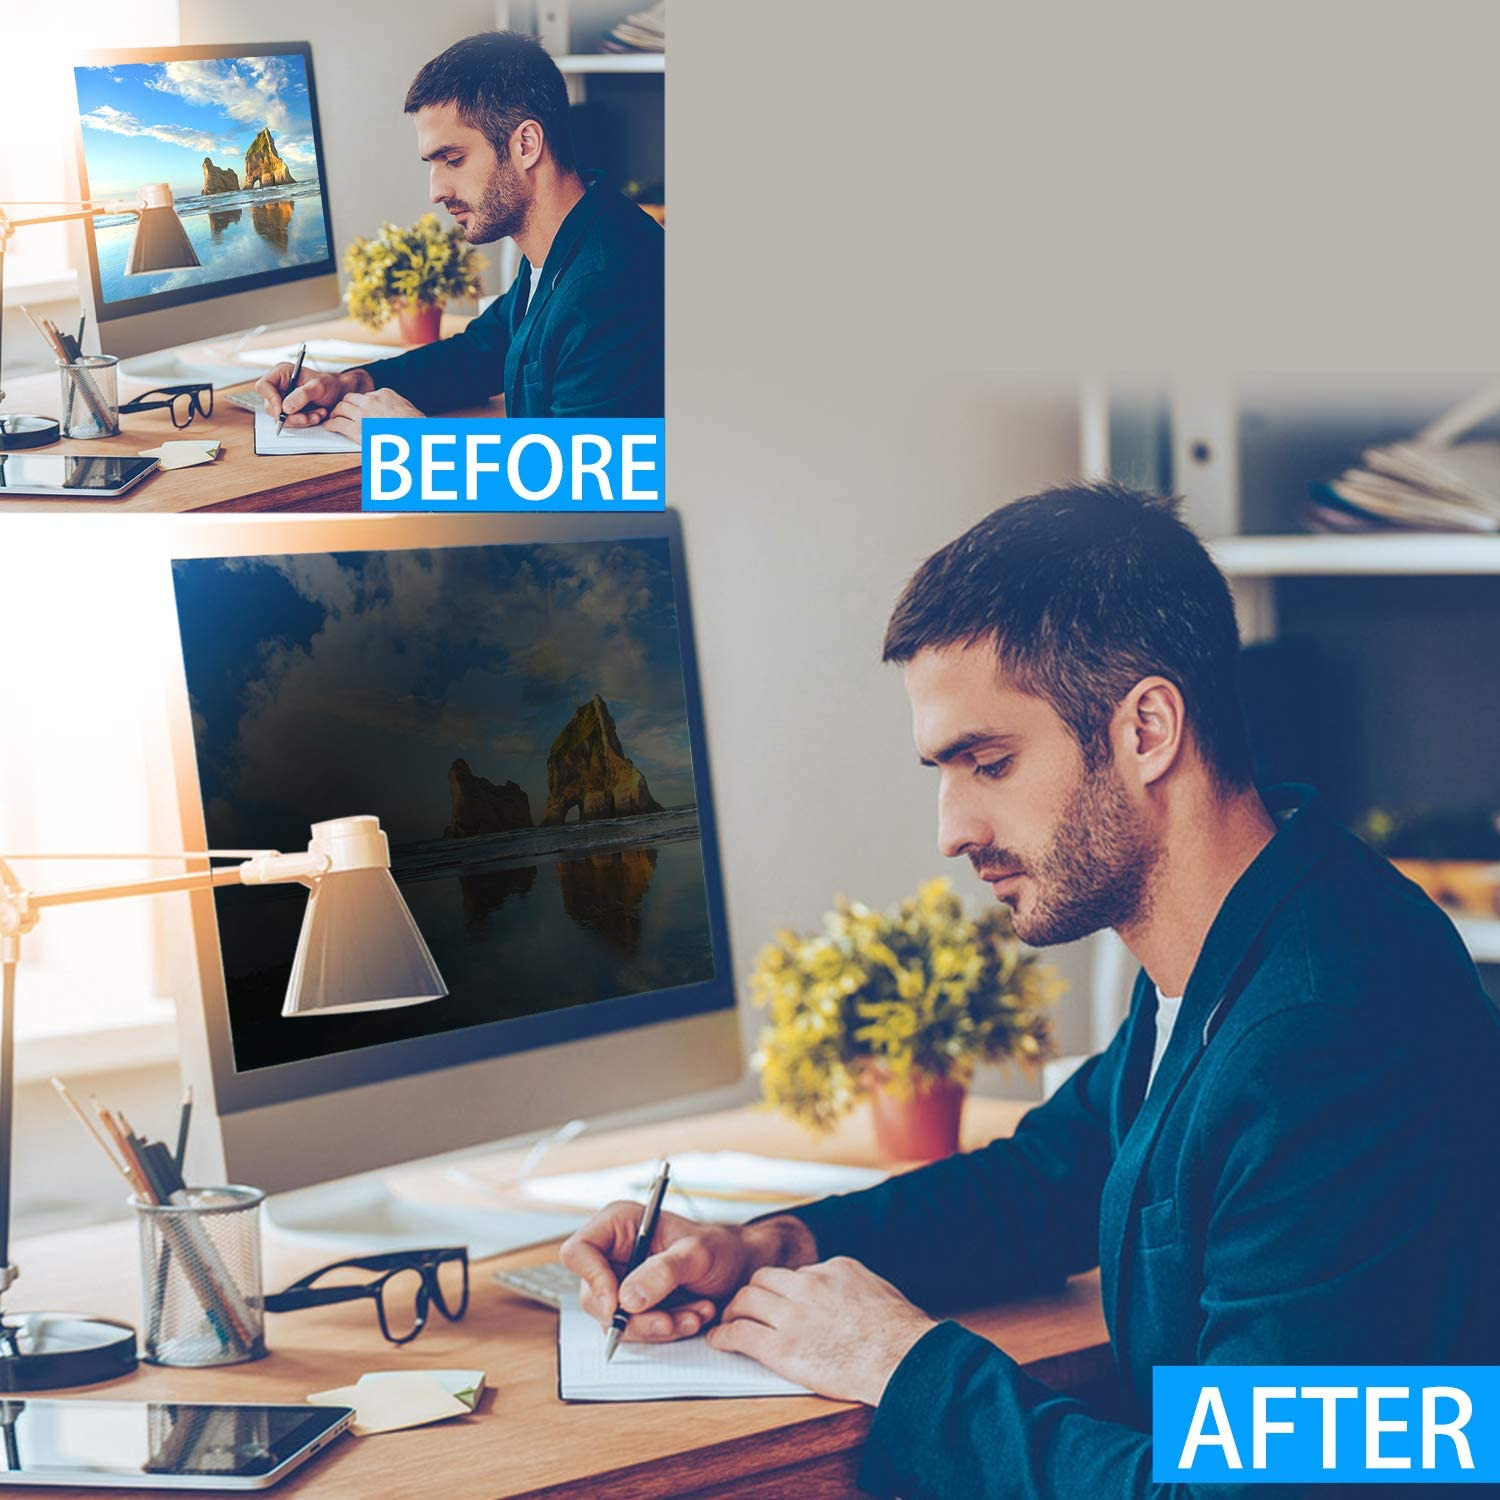 Please Measure Carefully! 23 Inch Privacy Screen Filter for Widescreen Monitor 16:9 Aspect Ratio